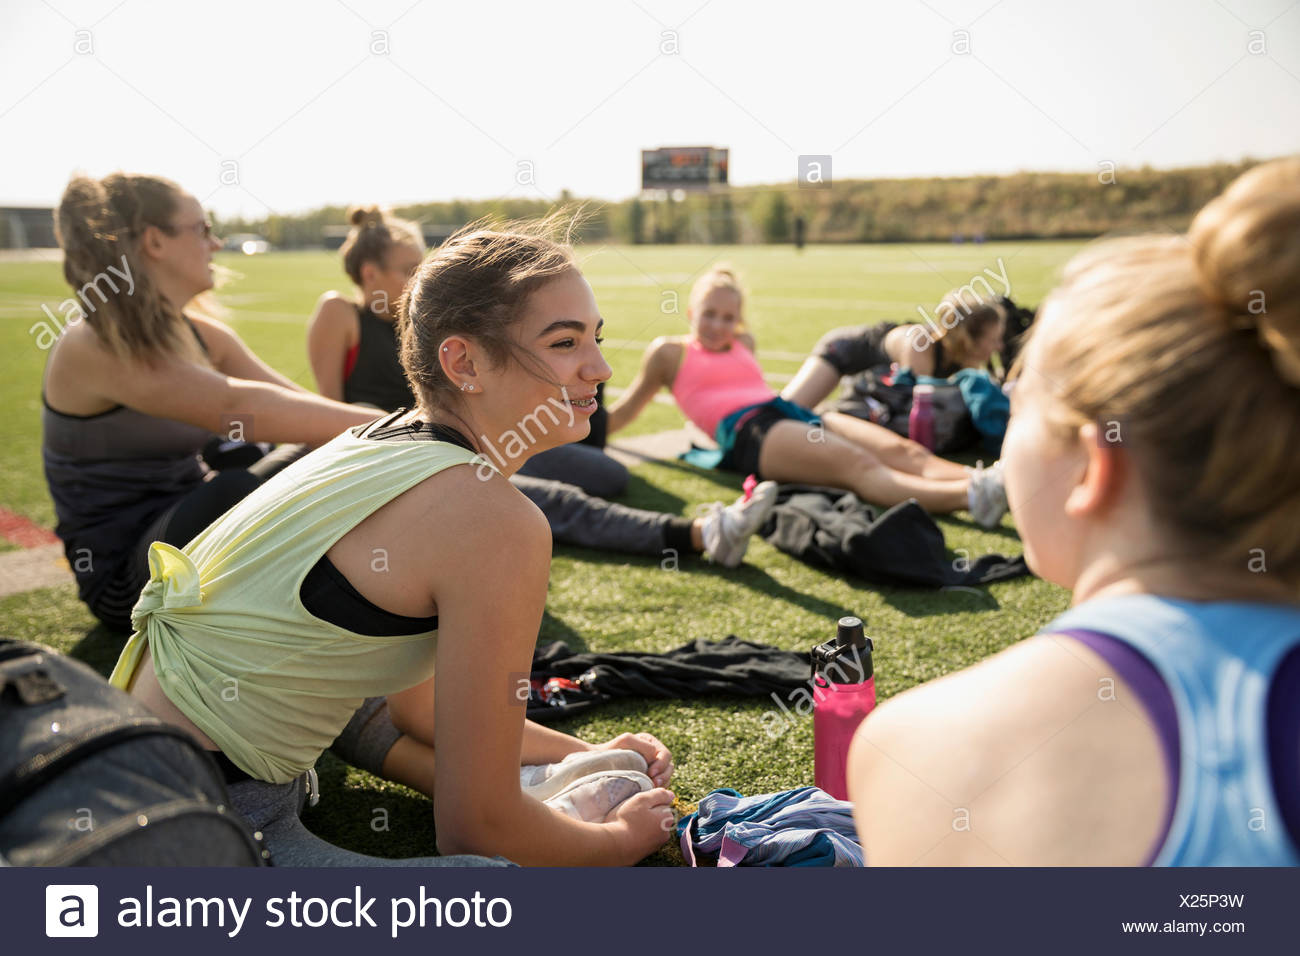 Teenage girl high school cheerleading team stretching and talking on sunny football field - Stock Image